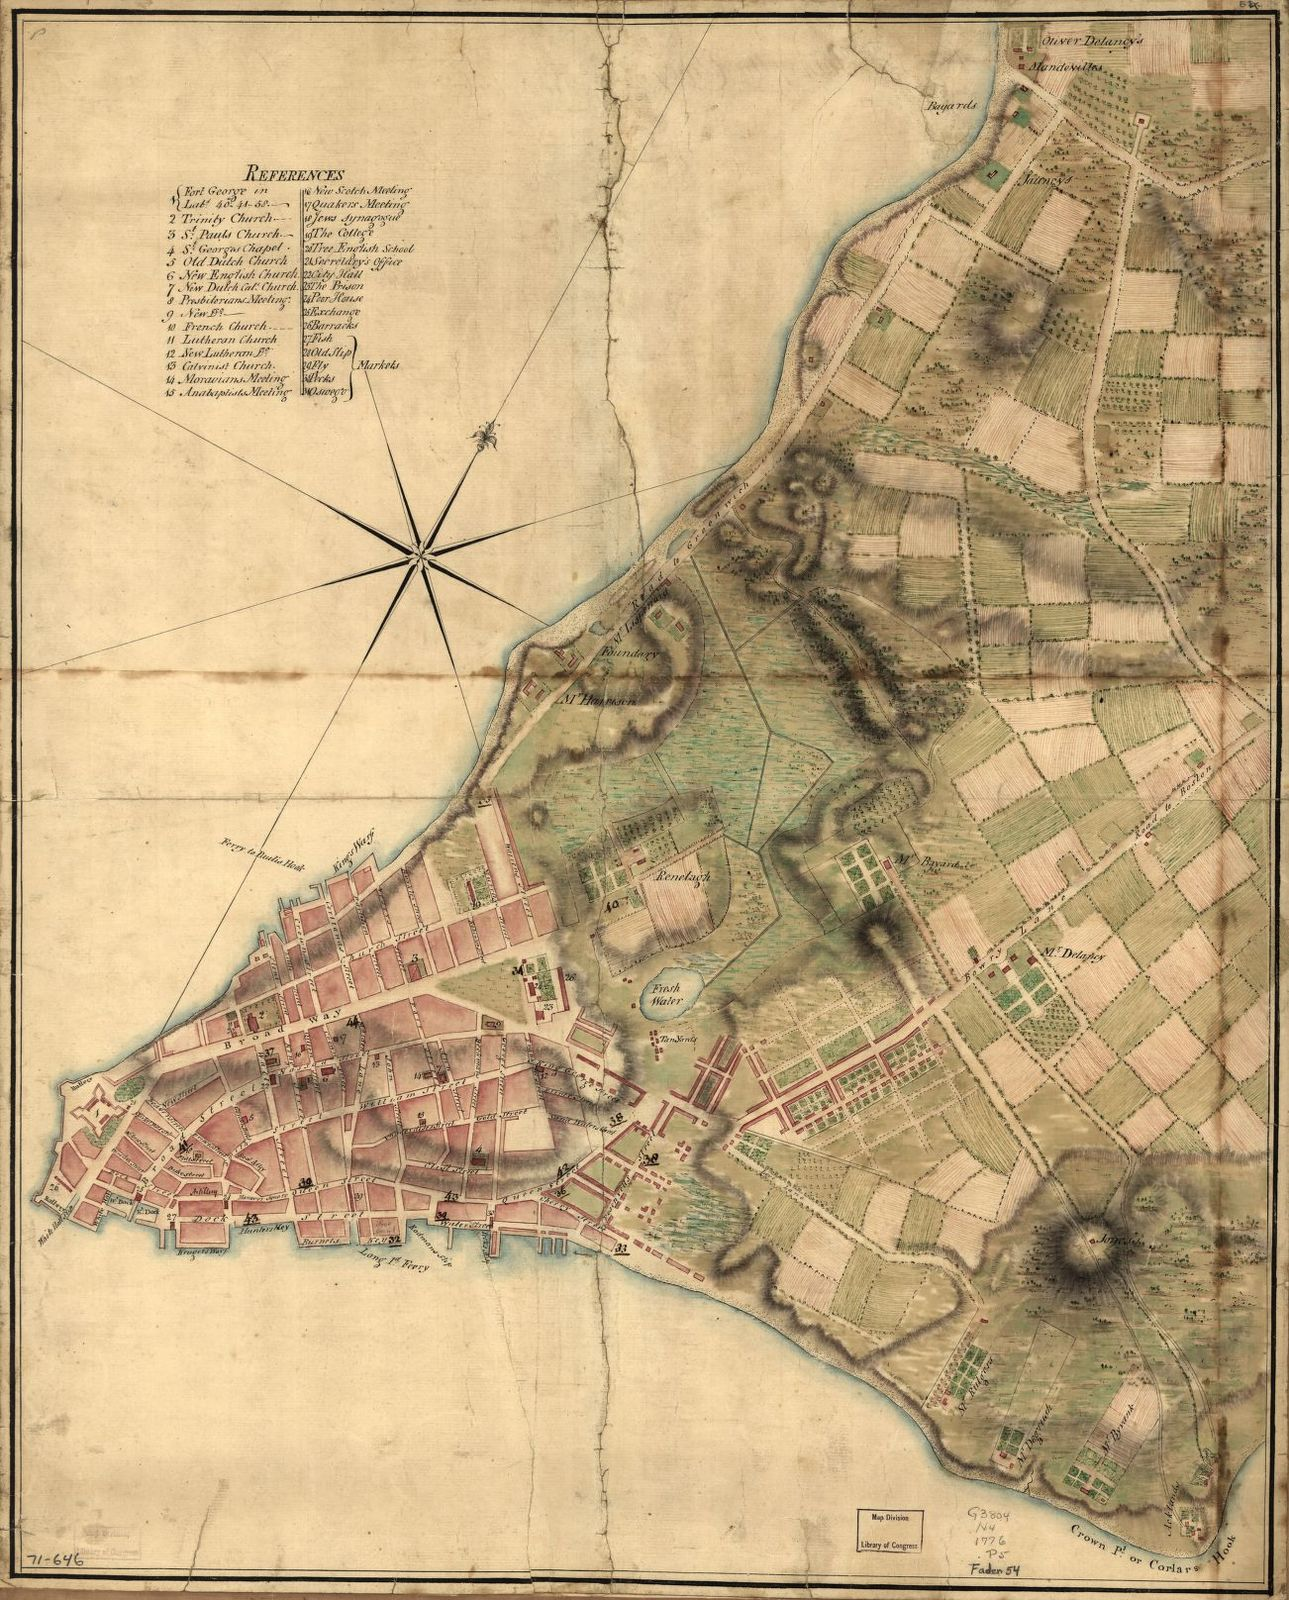 [A Plan of the city of New York.